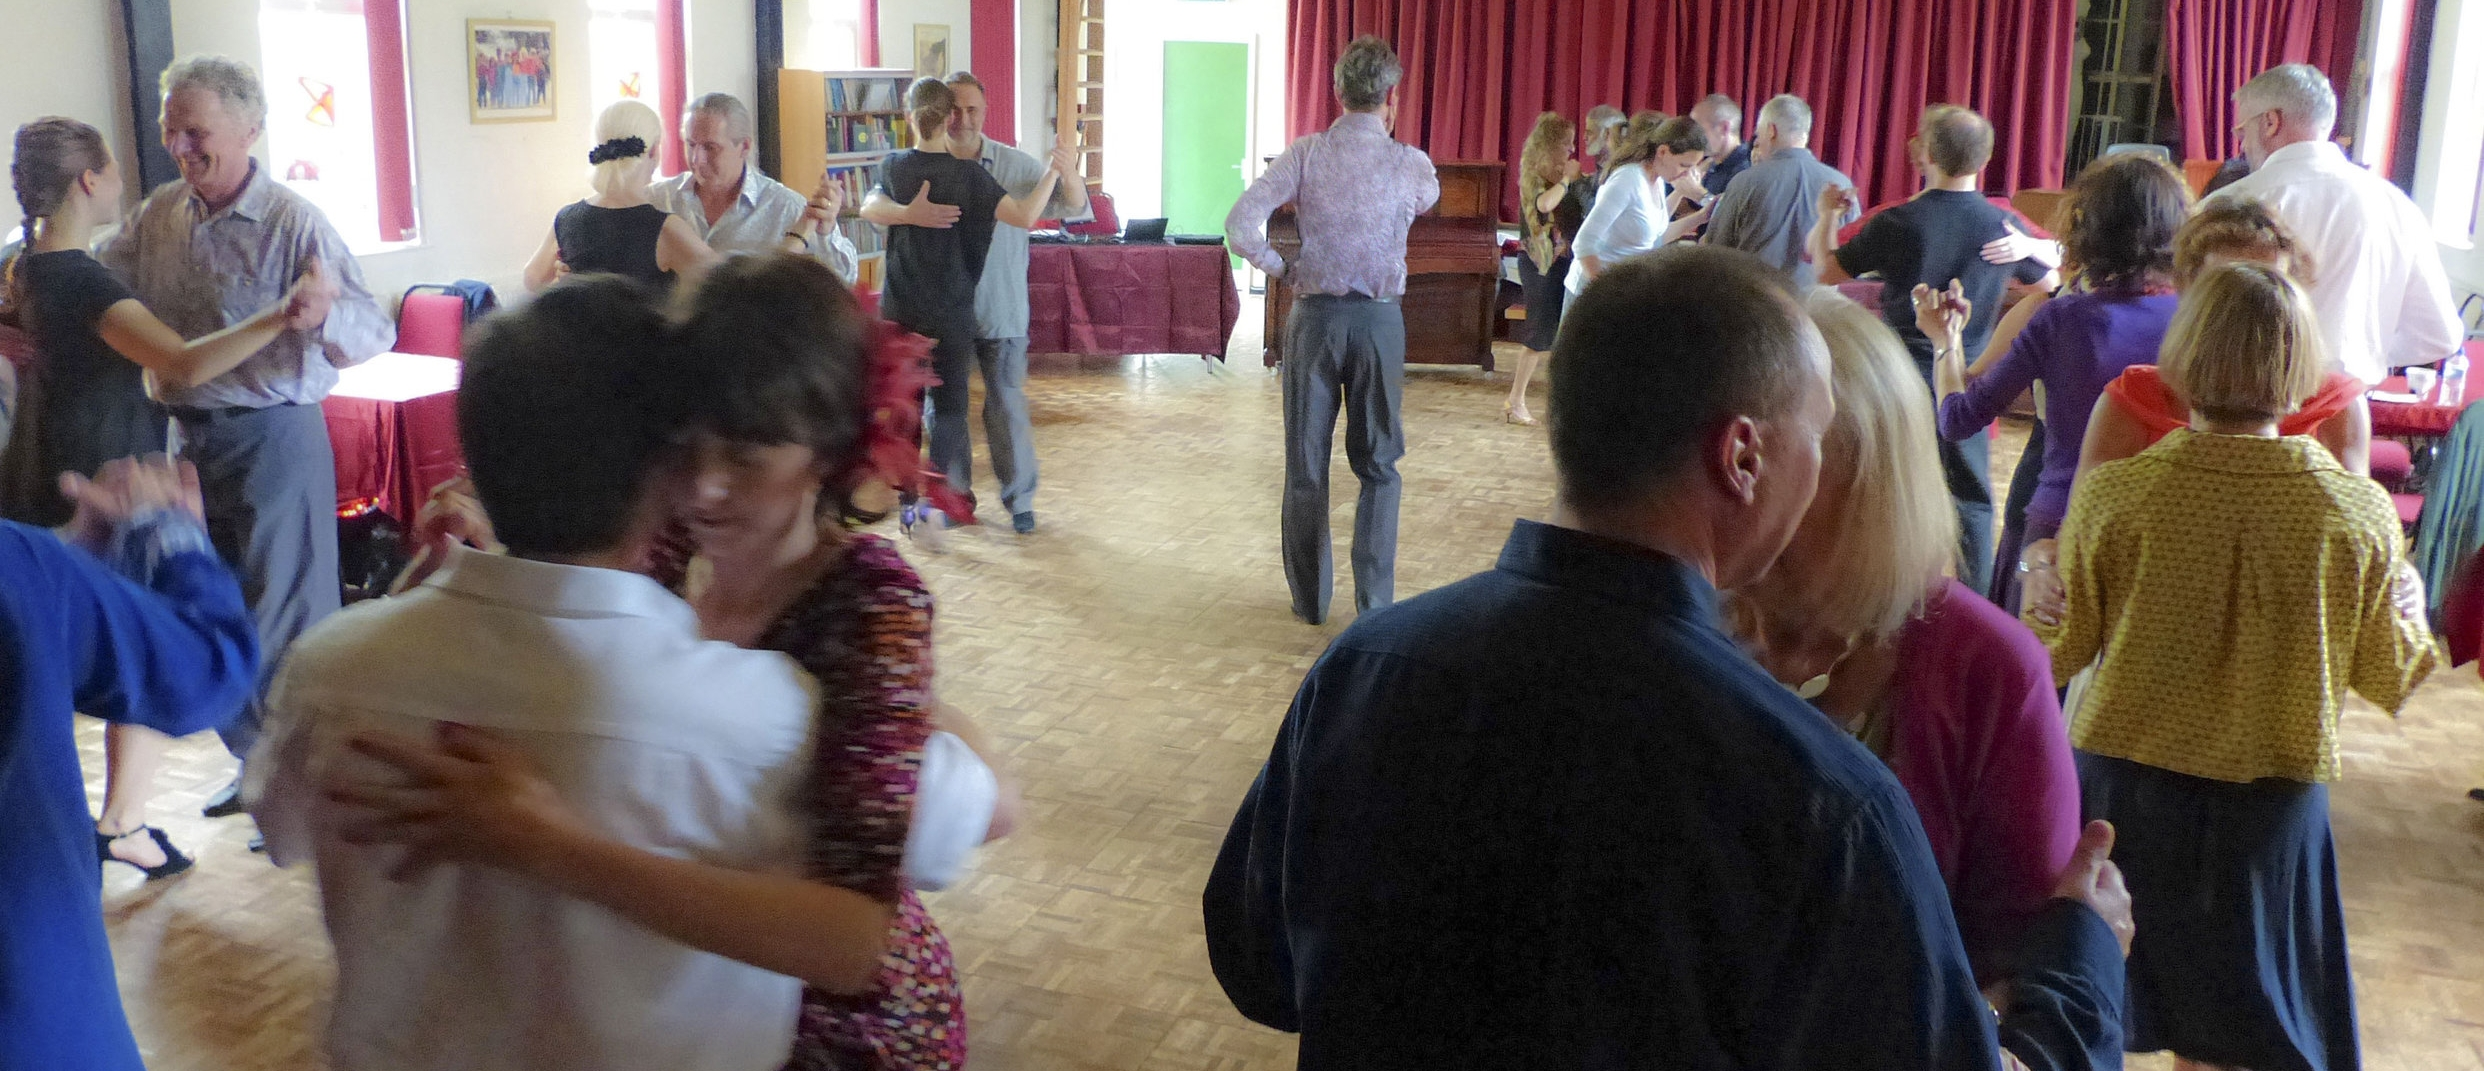 Tango Class in Swansea with Marek and Olivera